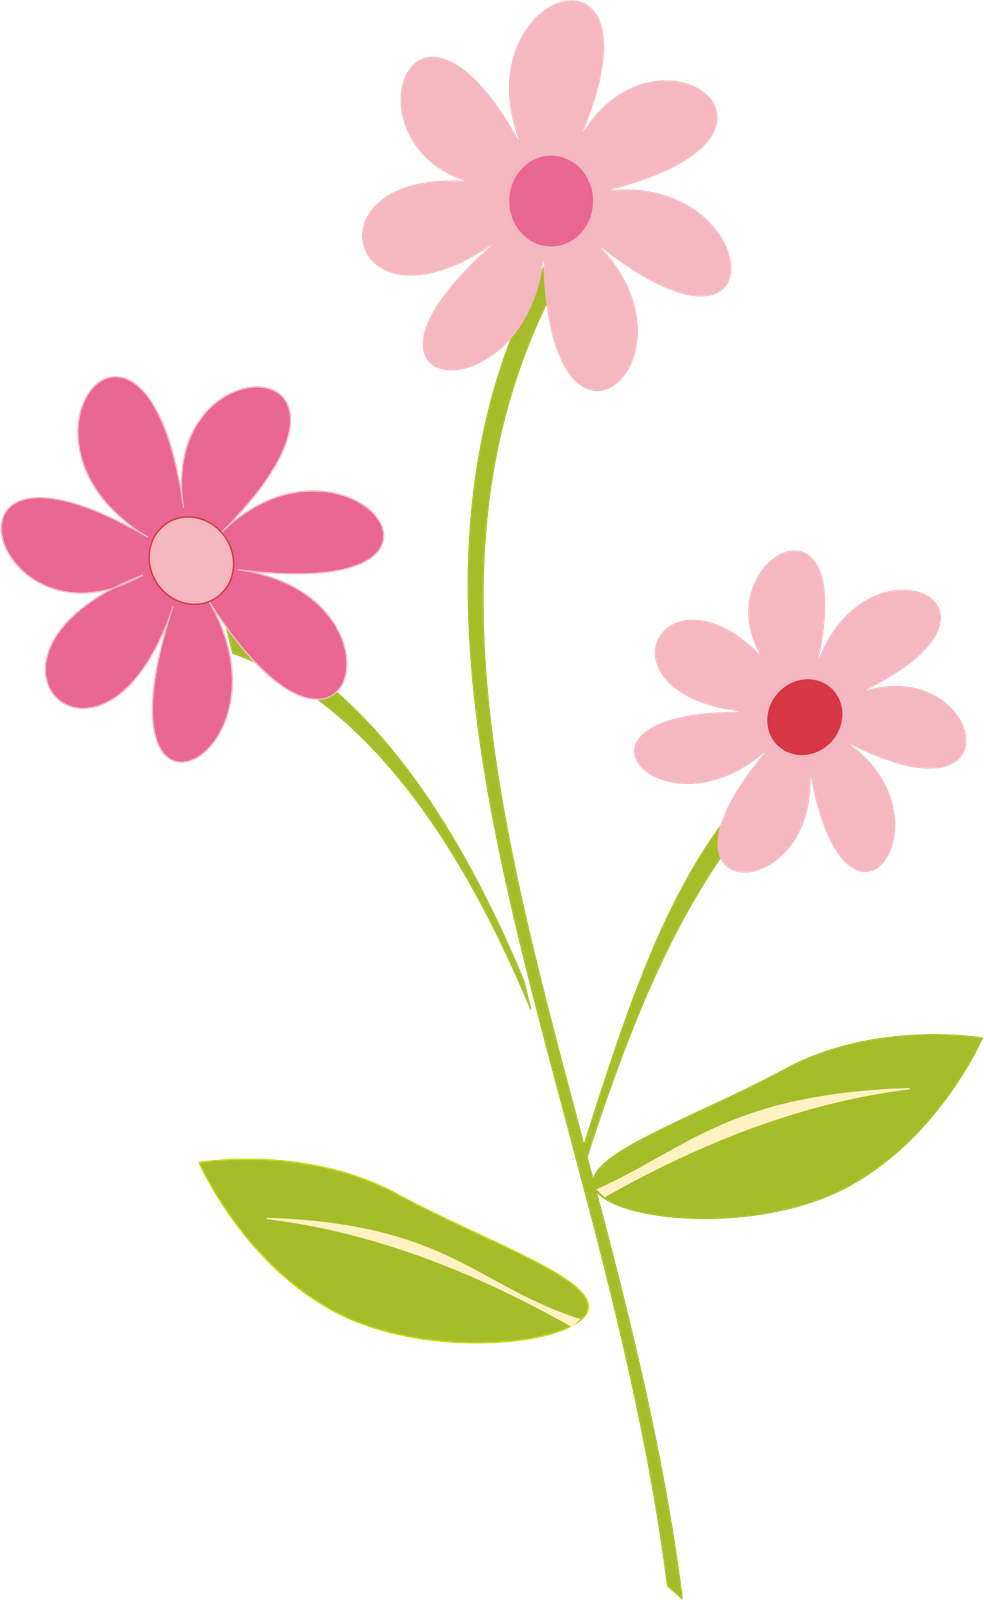 Flower Clipart Png - Pin by Elham Mahdi on png.   Flower clipart, Cartoon flowers, Clip art